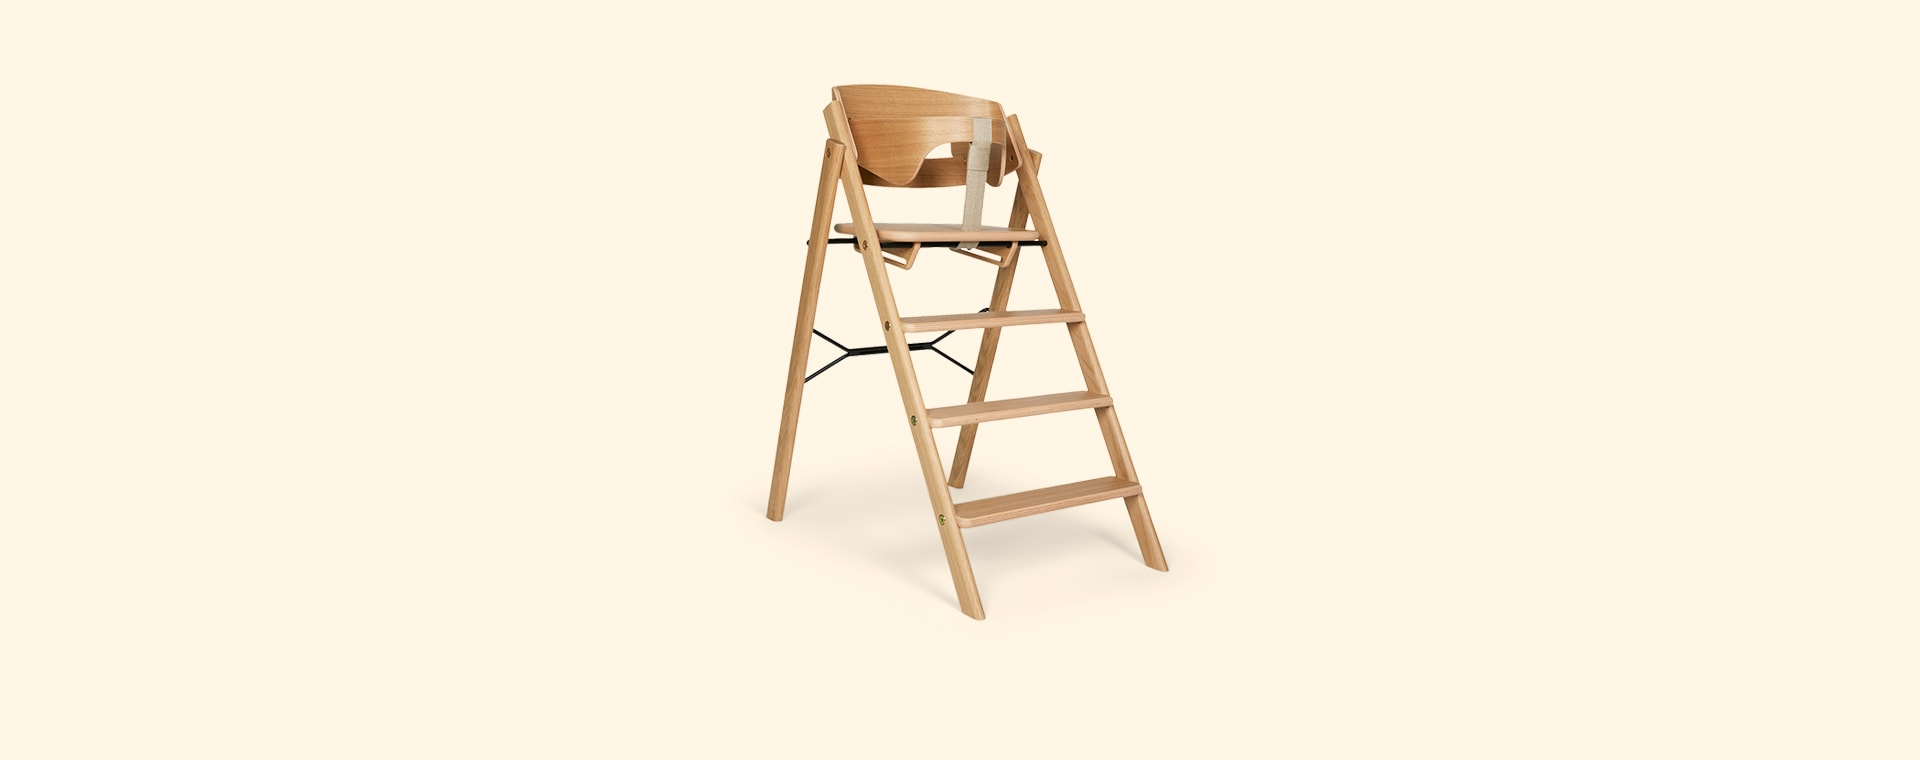 Natural Oak KAOS Foldable Highchair With Safety Rail